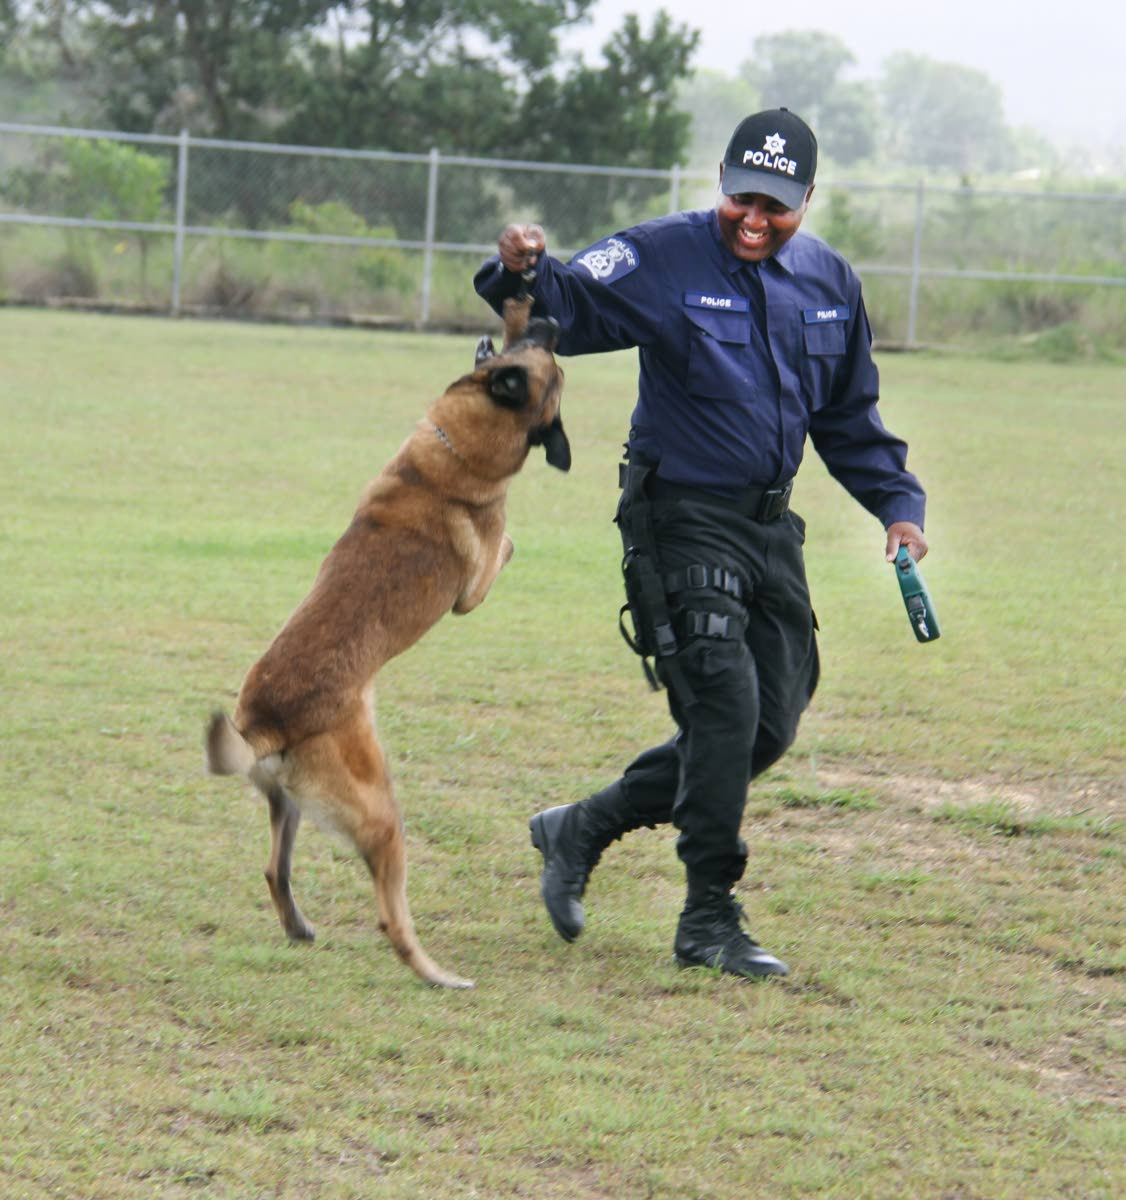 File photo: Dani undergoes training with his handler Cpl Stephen Swanson of the TT Canine Police.